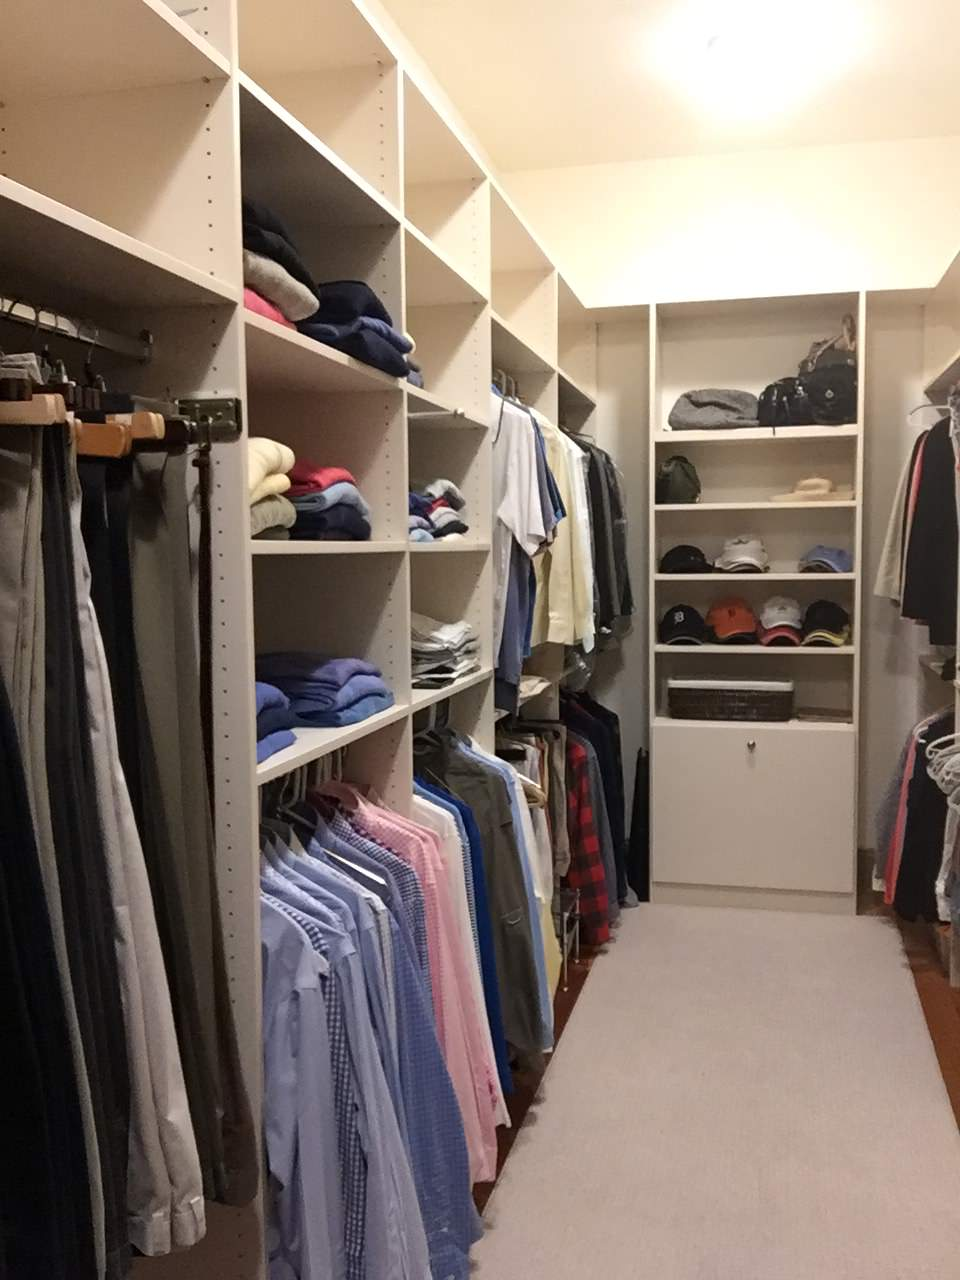 This is our clients finished closet complete and organized. They have made the best use of their space and have room to grow!